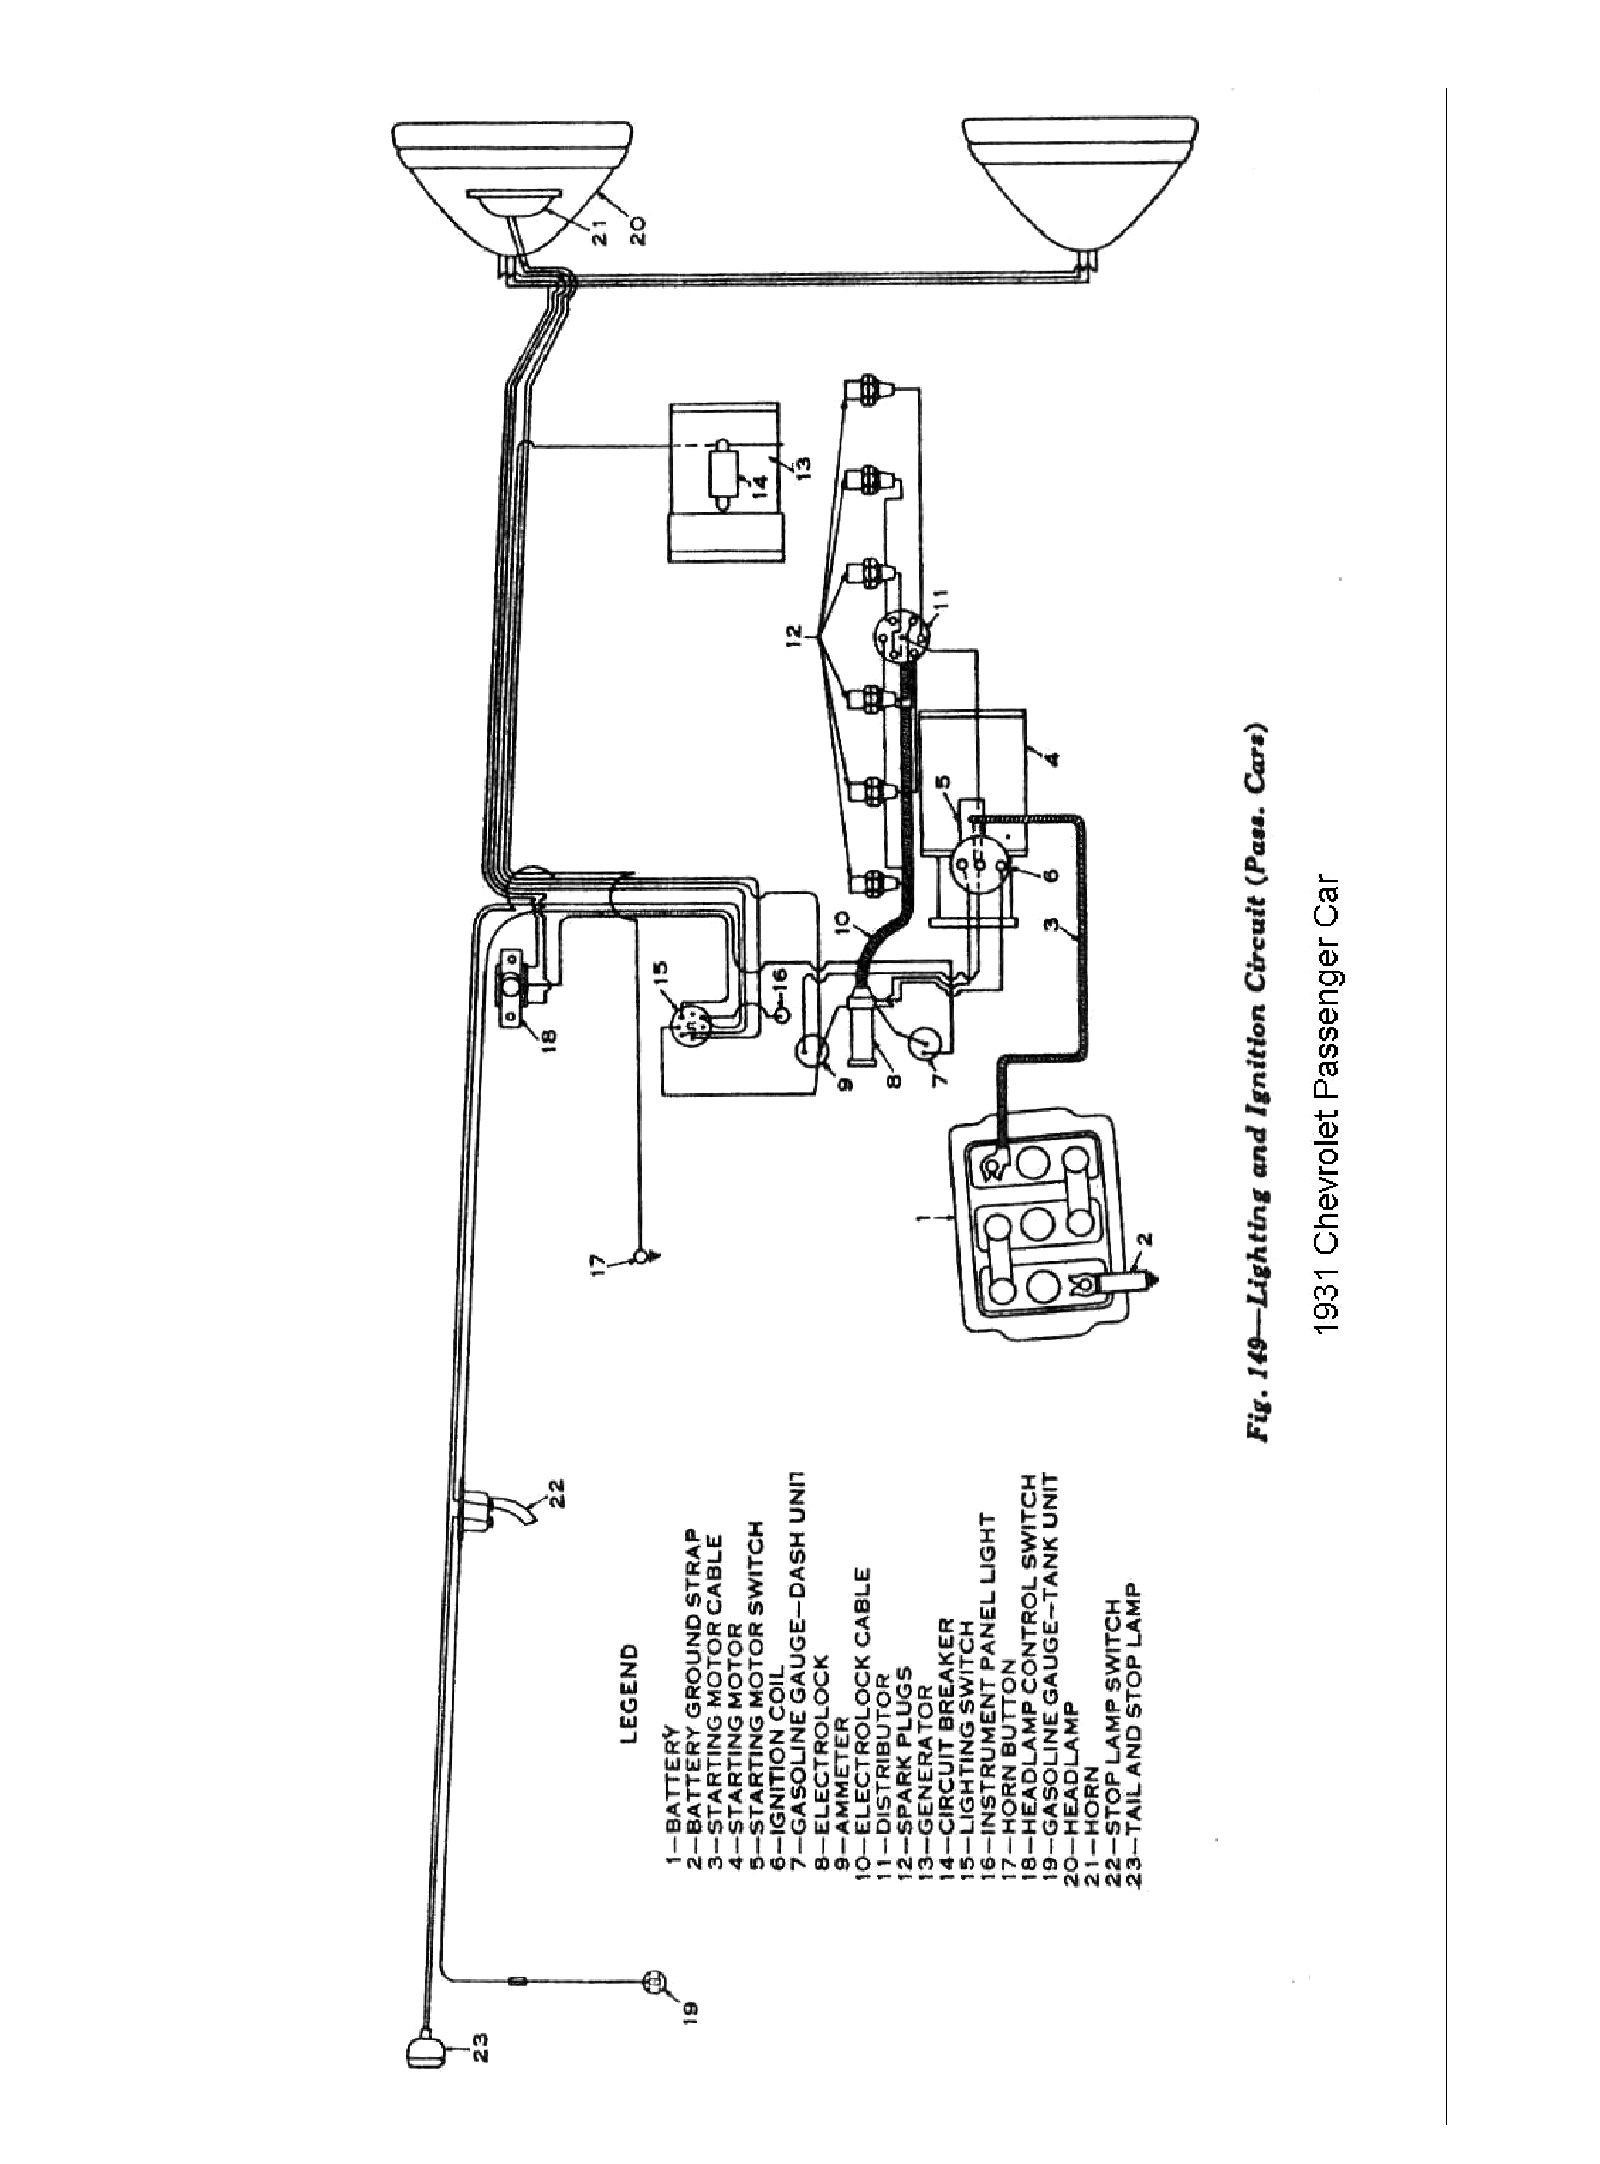 Wiring Diagram for Legend Race Car Save Chevy Wiring Diagrams